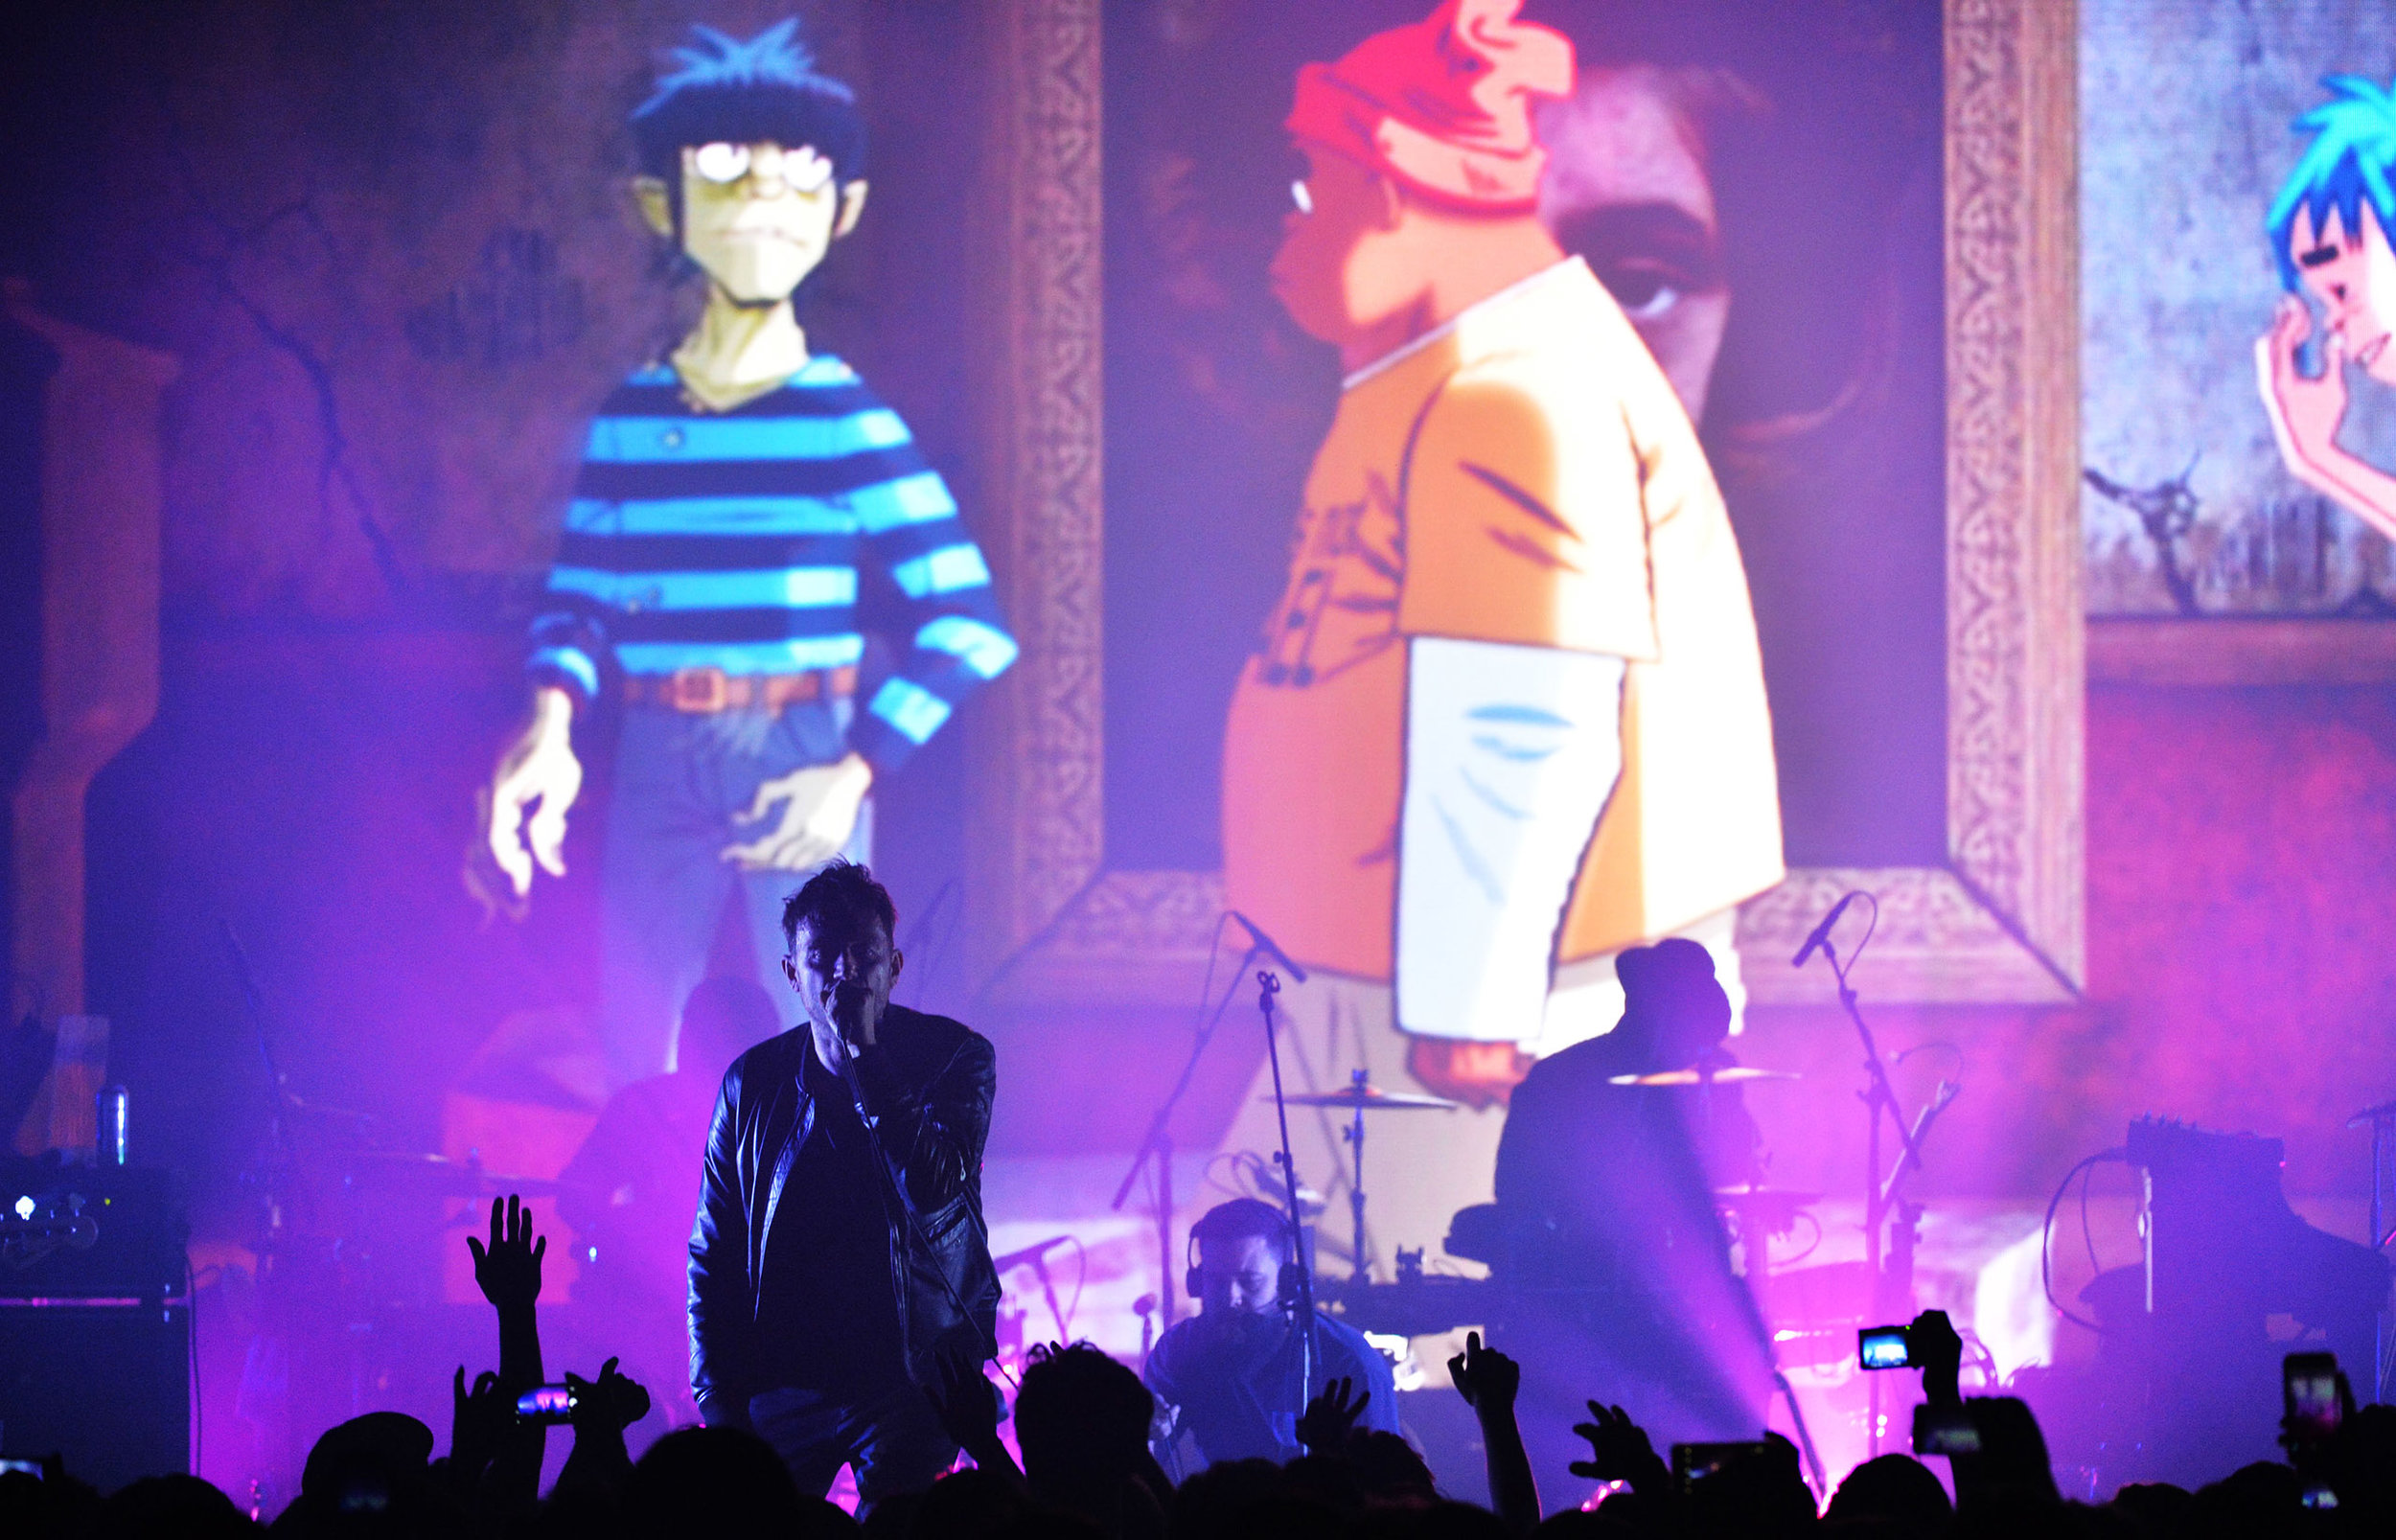 Gorillaz Humanz 011 by Mark Allan.jpg